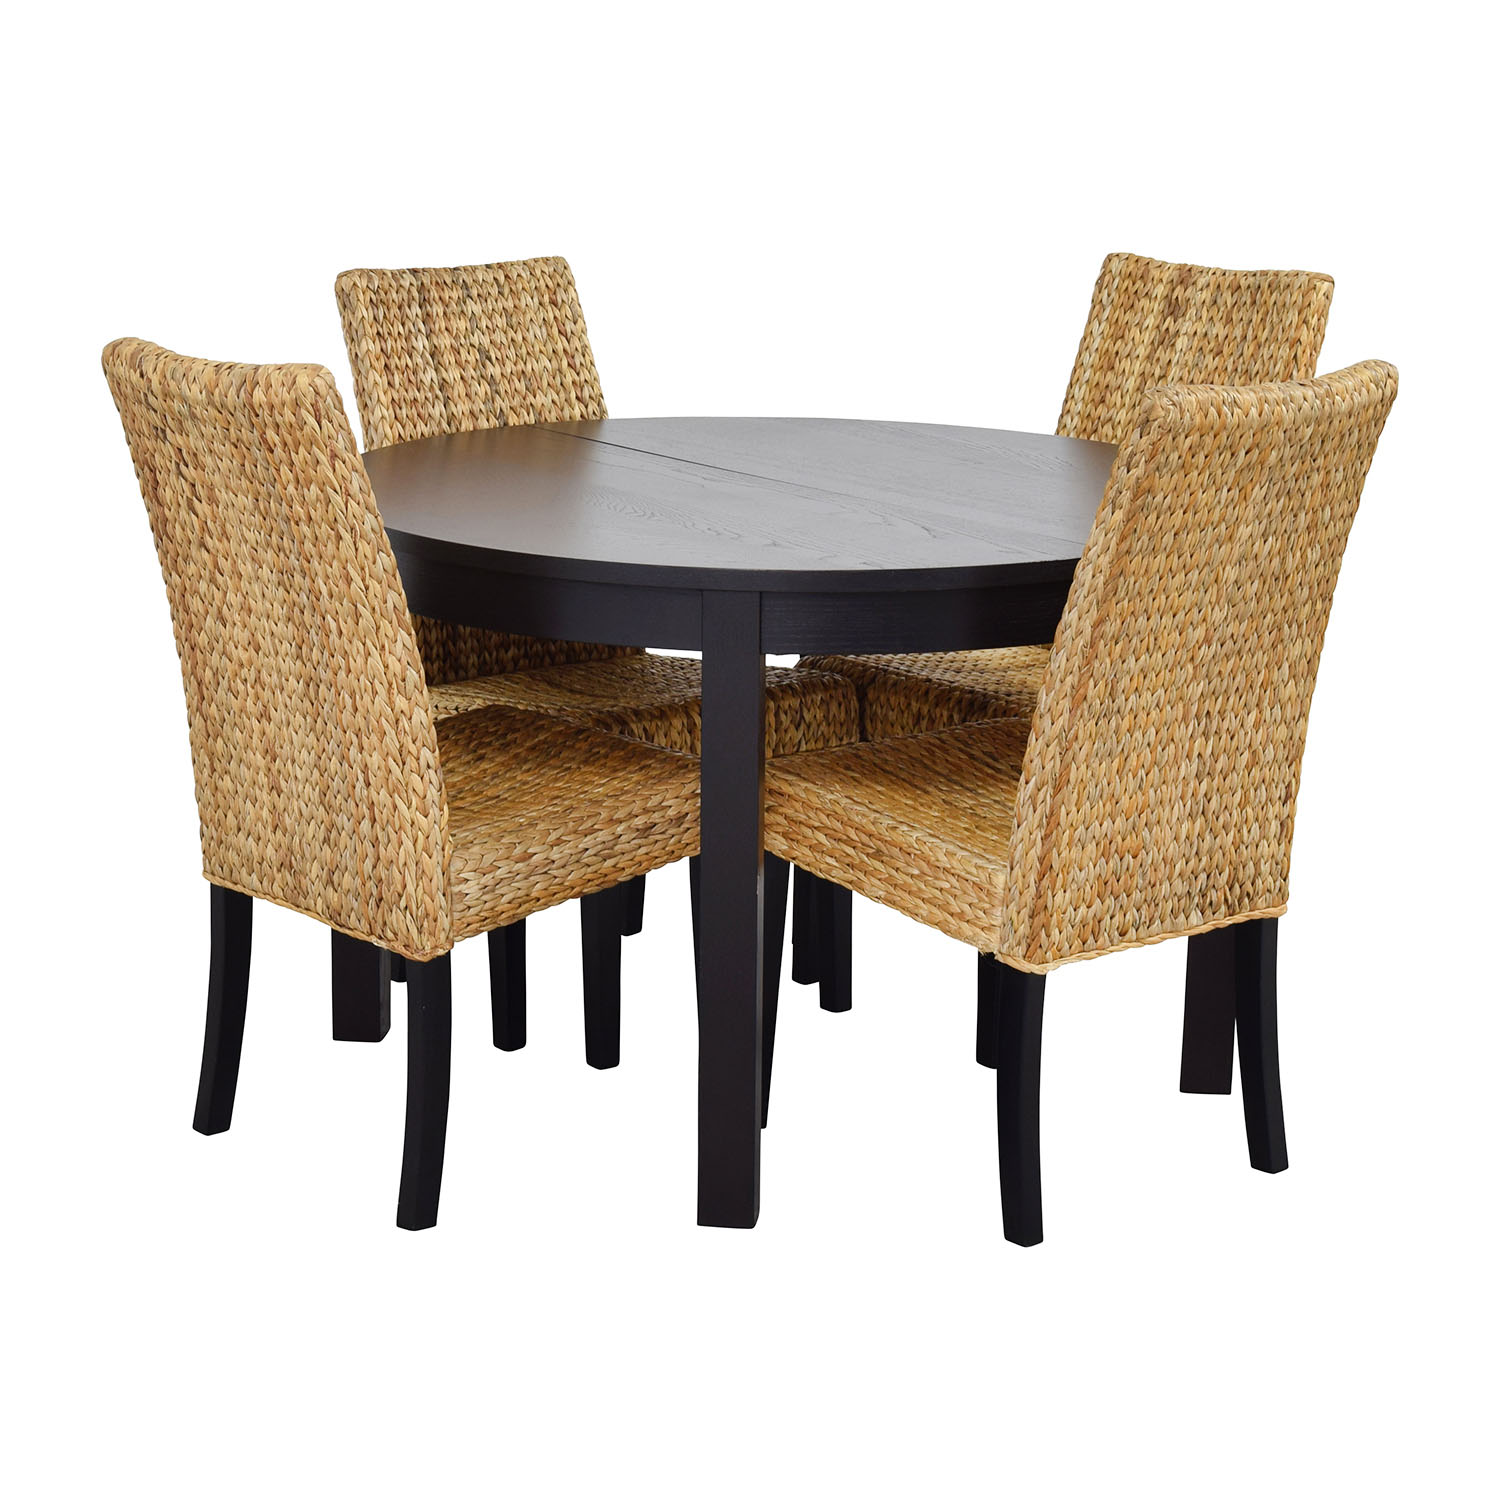 Dining Chairs Sets: Round Black Dining Table Set With Four Chairs